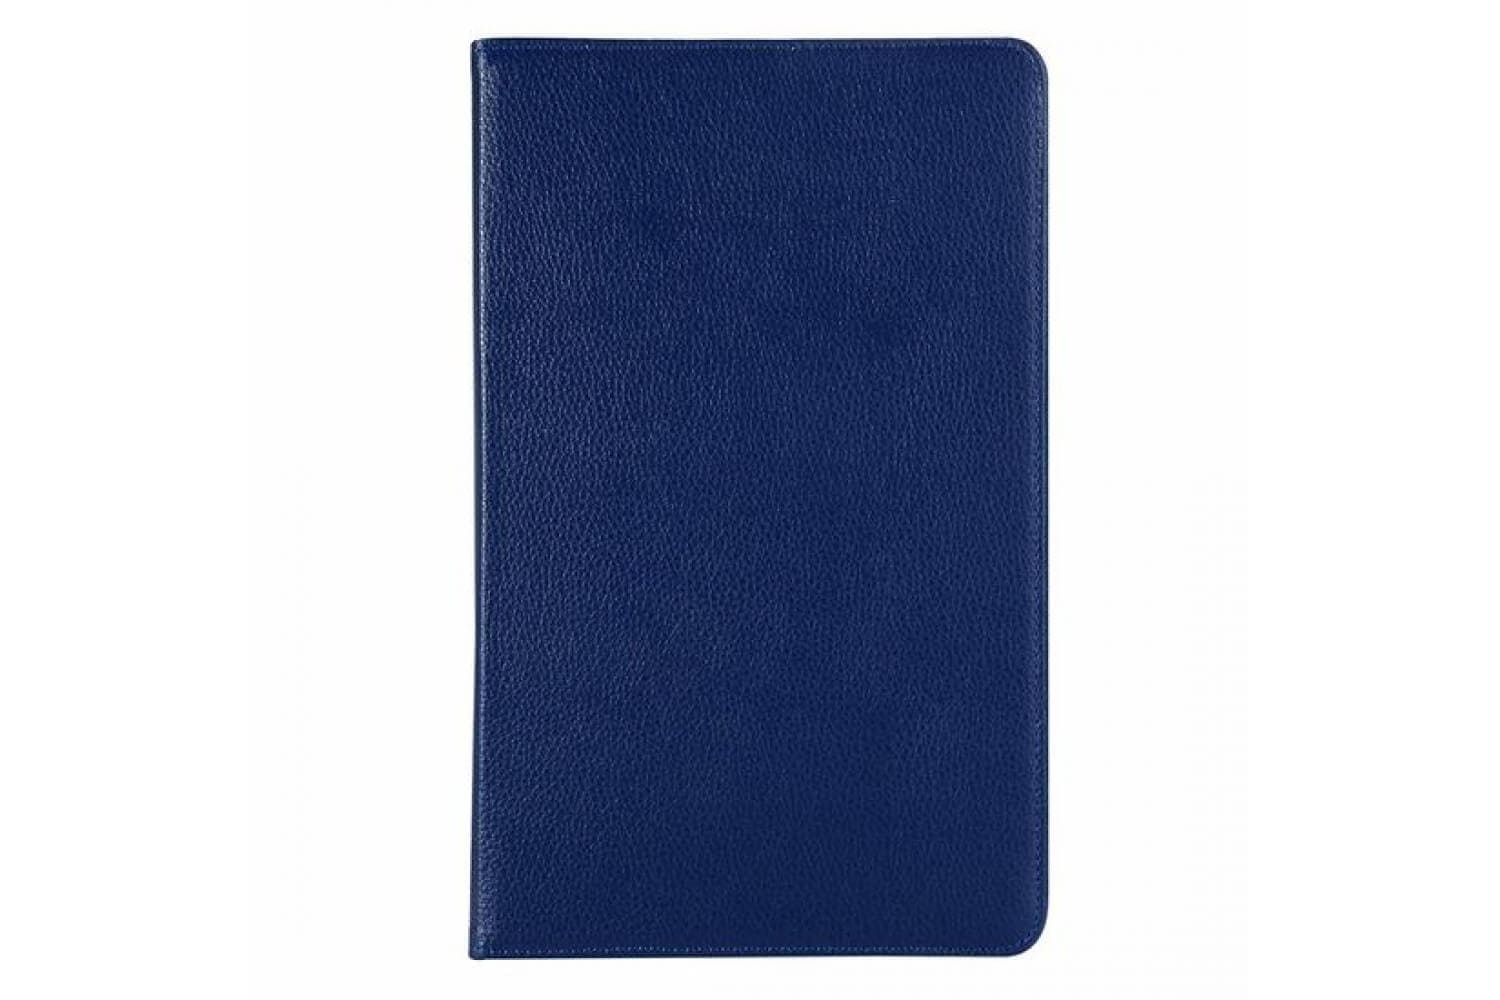 samsung galaxy tab a 10.5 2018 rotating case 360° pu leather blue